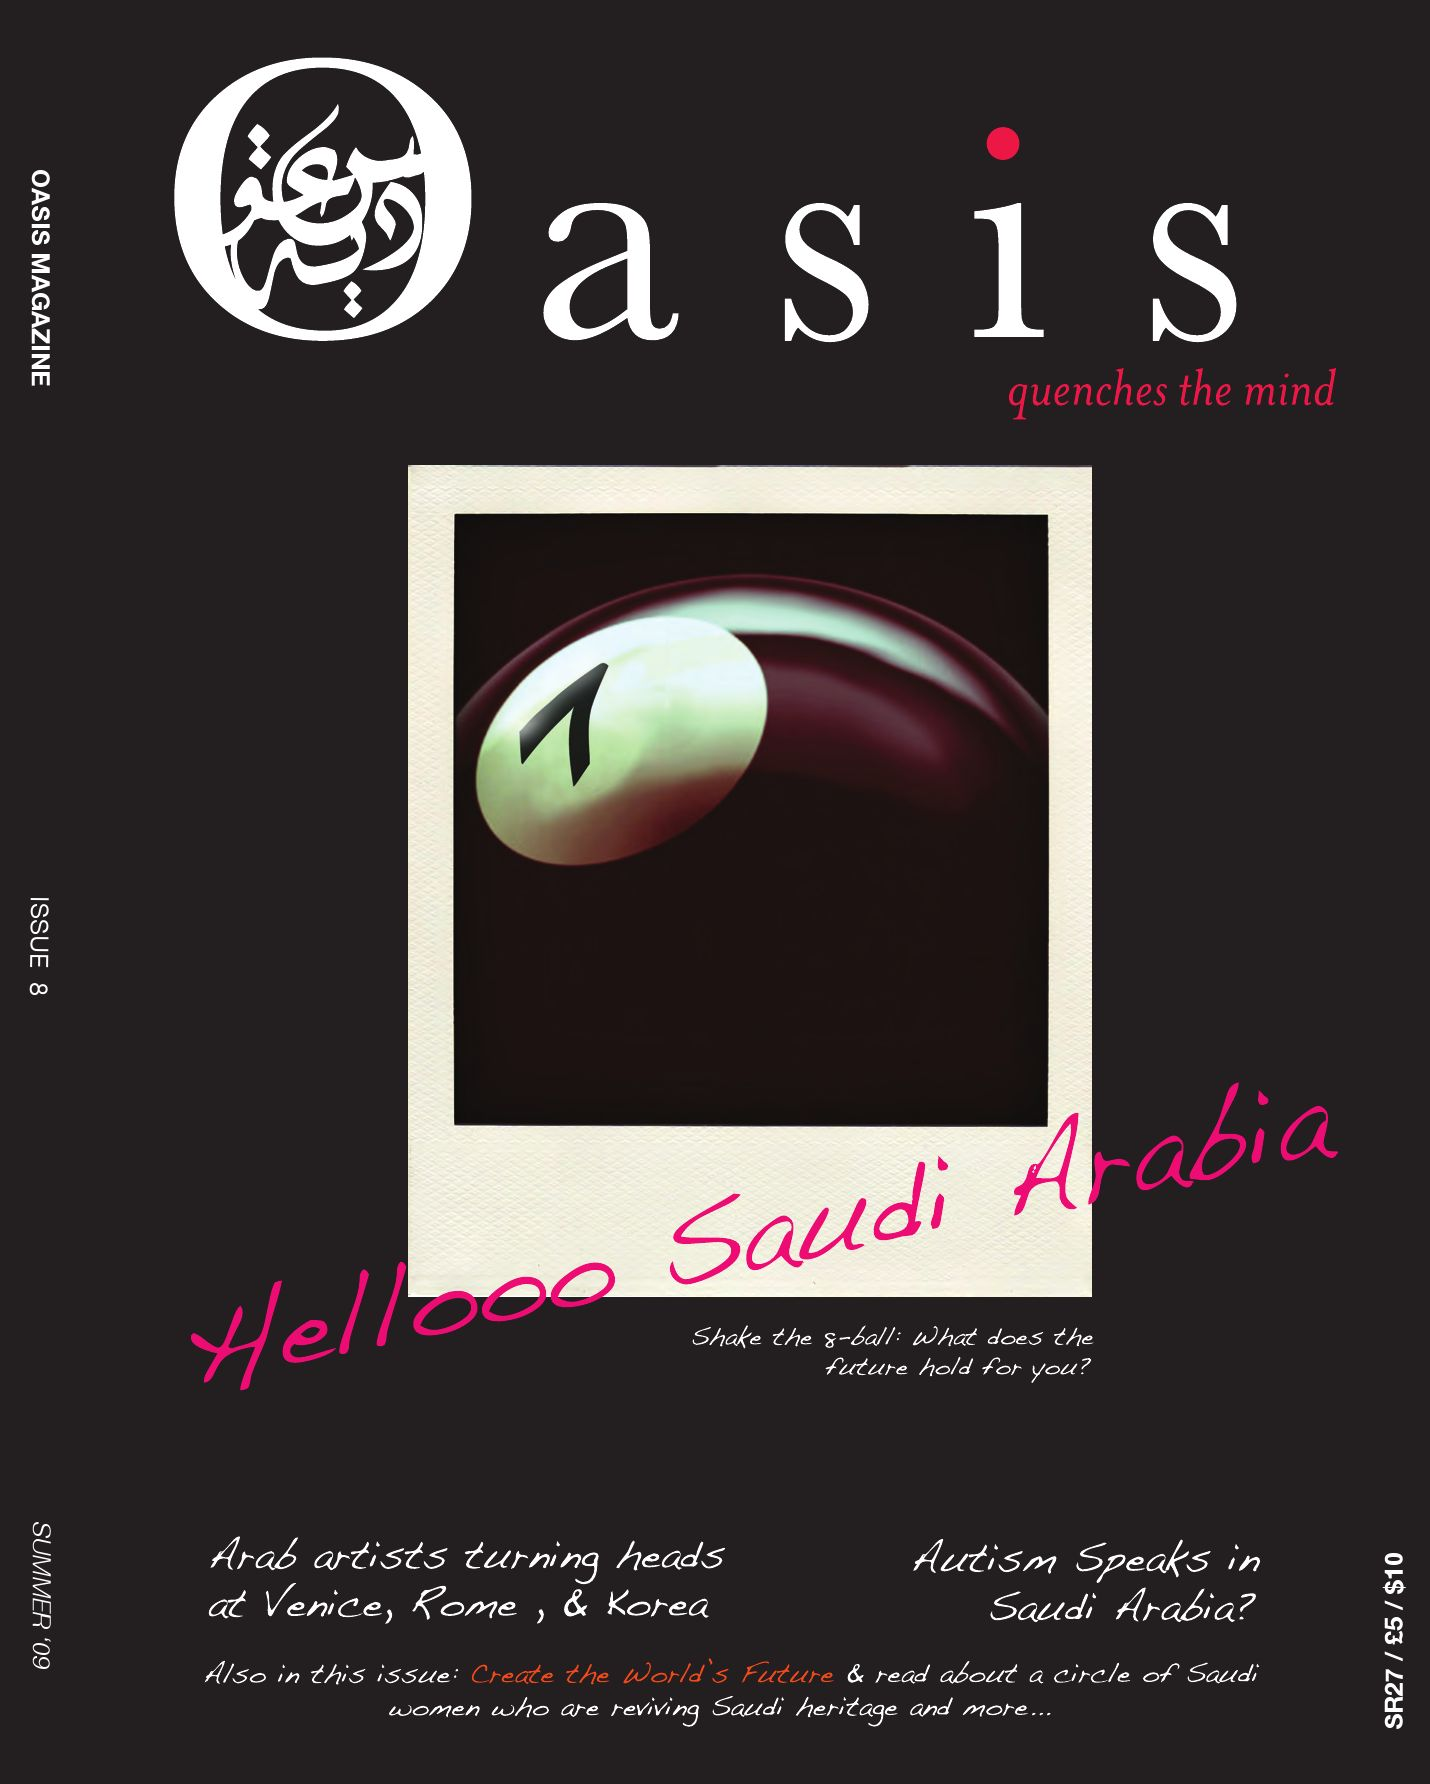 Oasis Magazine (8th issue) by MDC issuu